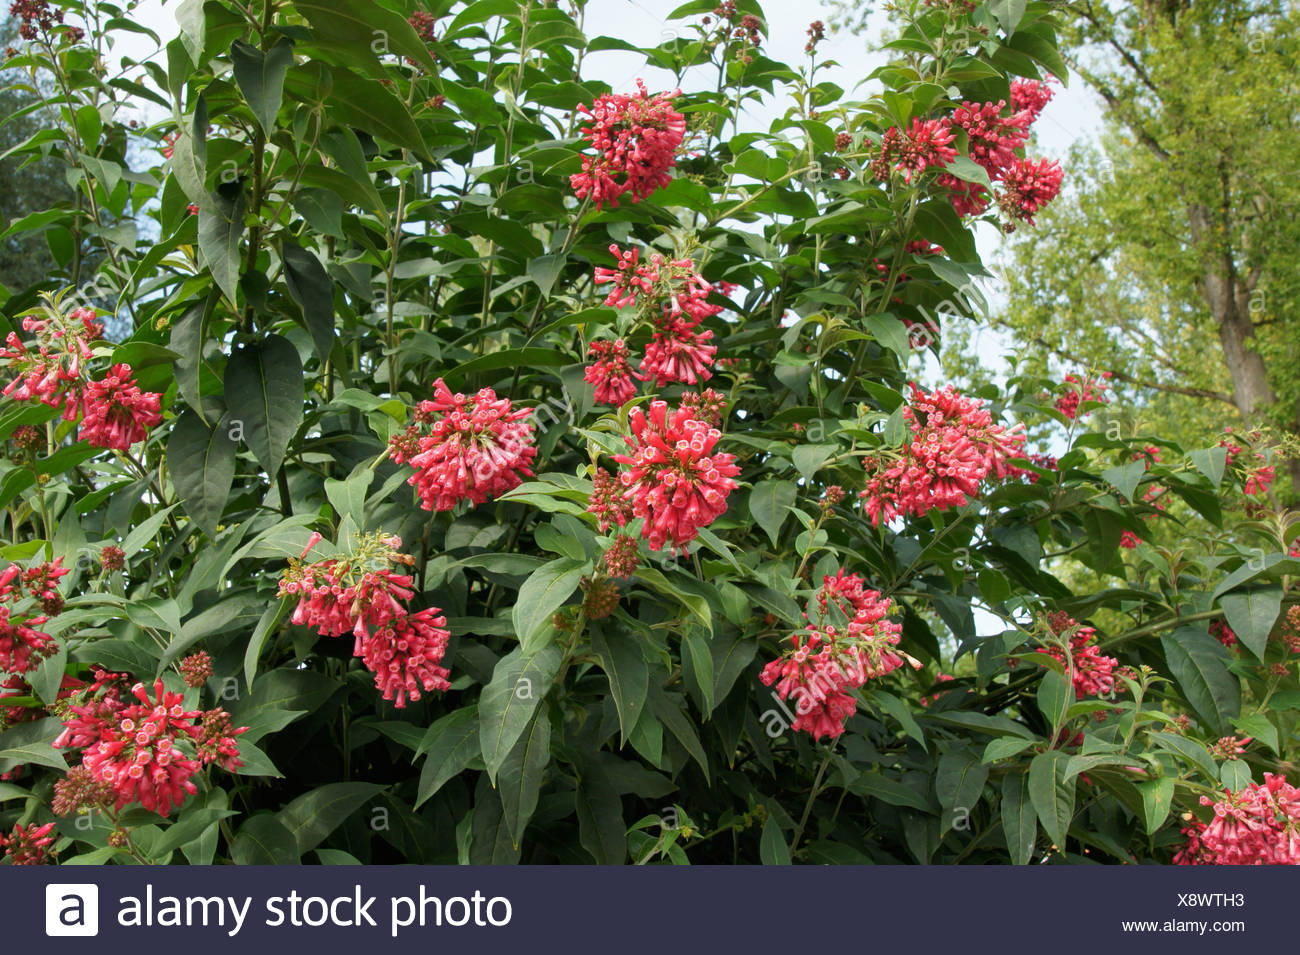 Strauch Sommerblüher Cestrum Elegans Hammerstrauch Stock Photo 280851231 Alamy